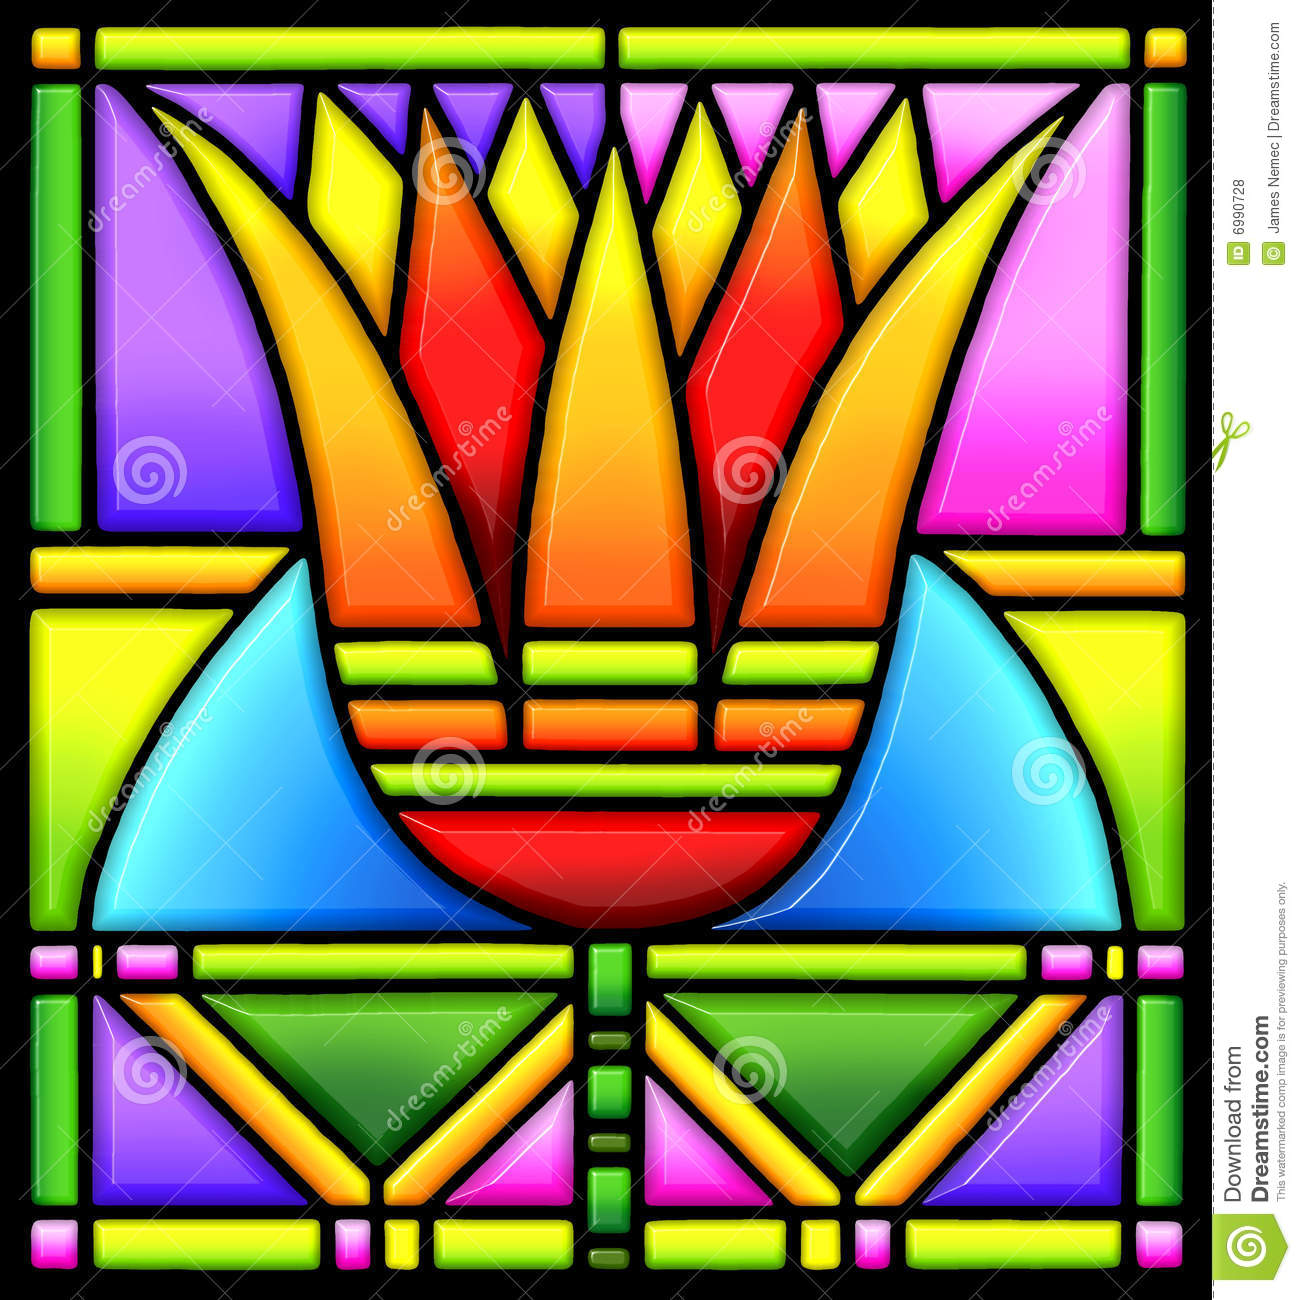 free clipart stained glass window - photo #22